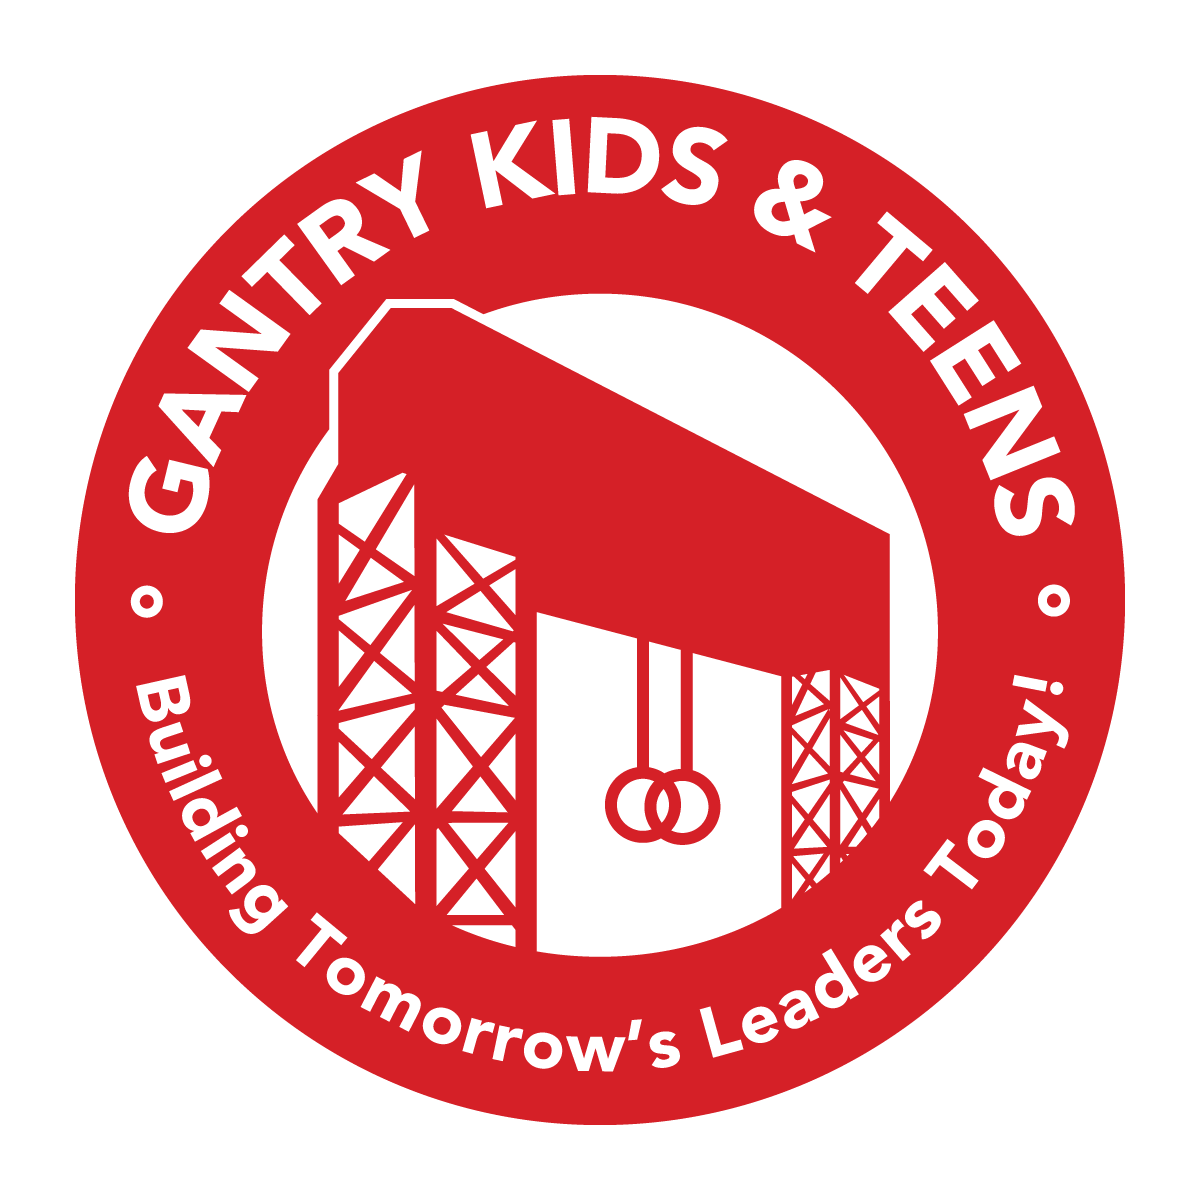 Gantry Kids & Teens